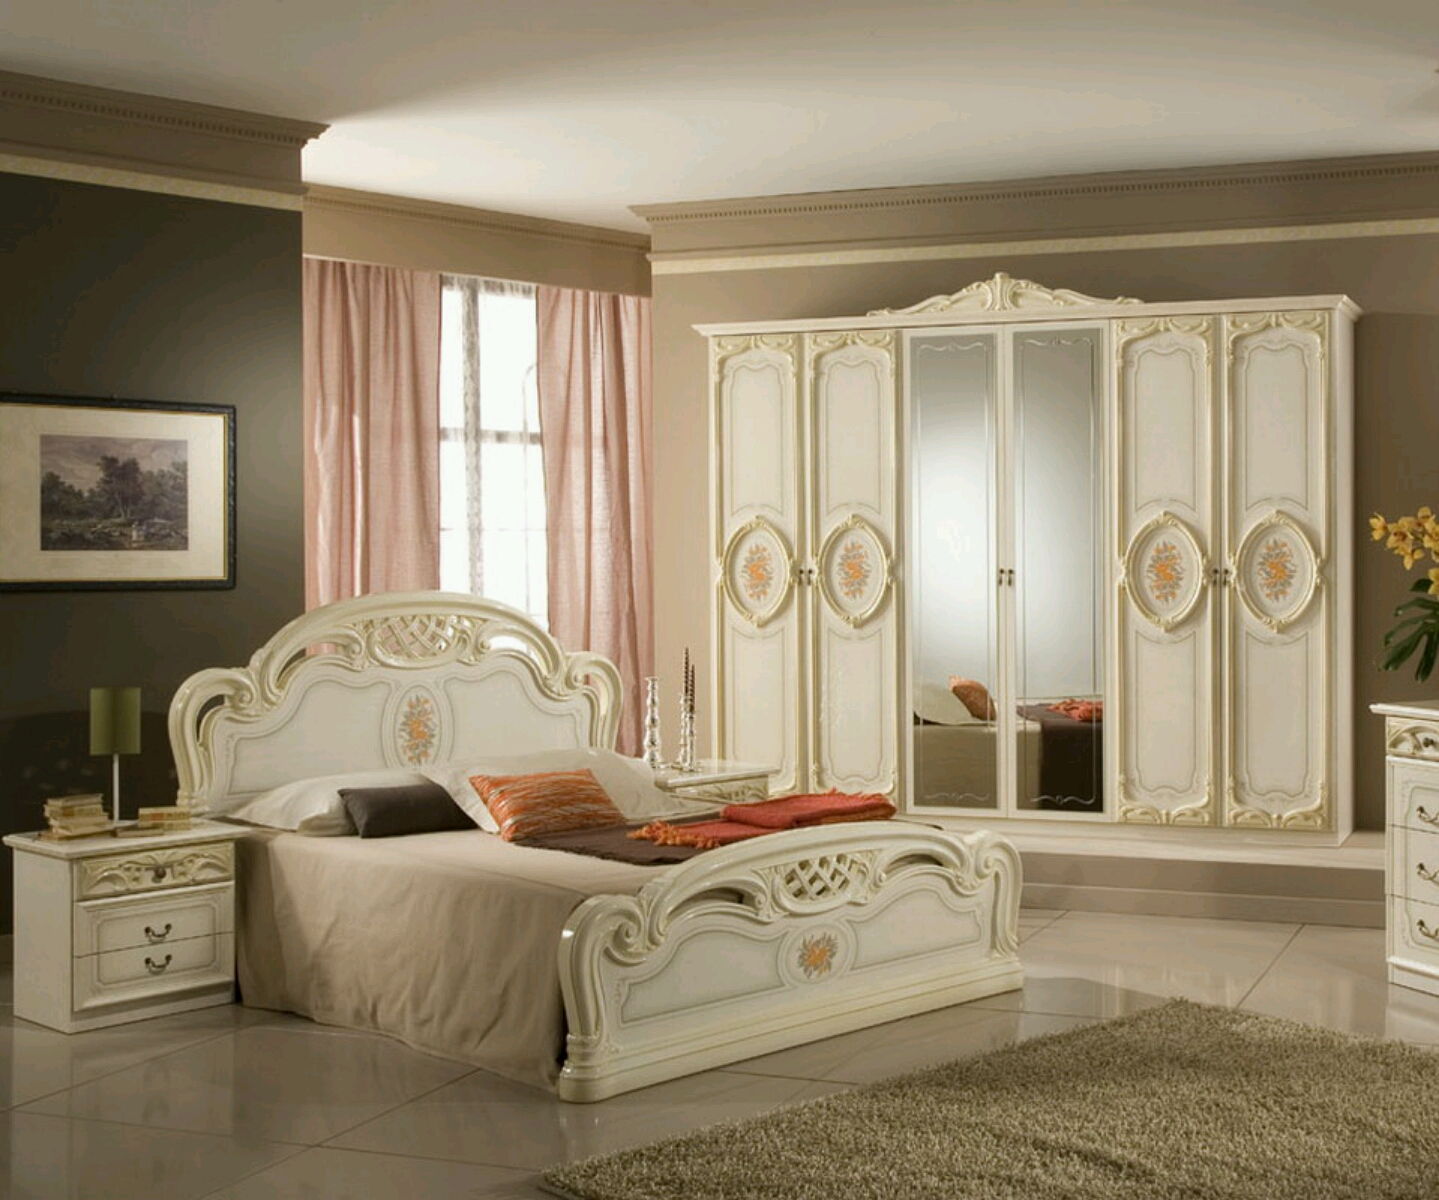 Modern luxury bedroom furniture designs ideas vintage for Bedroom furniture ideas